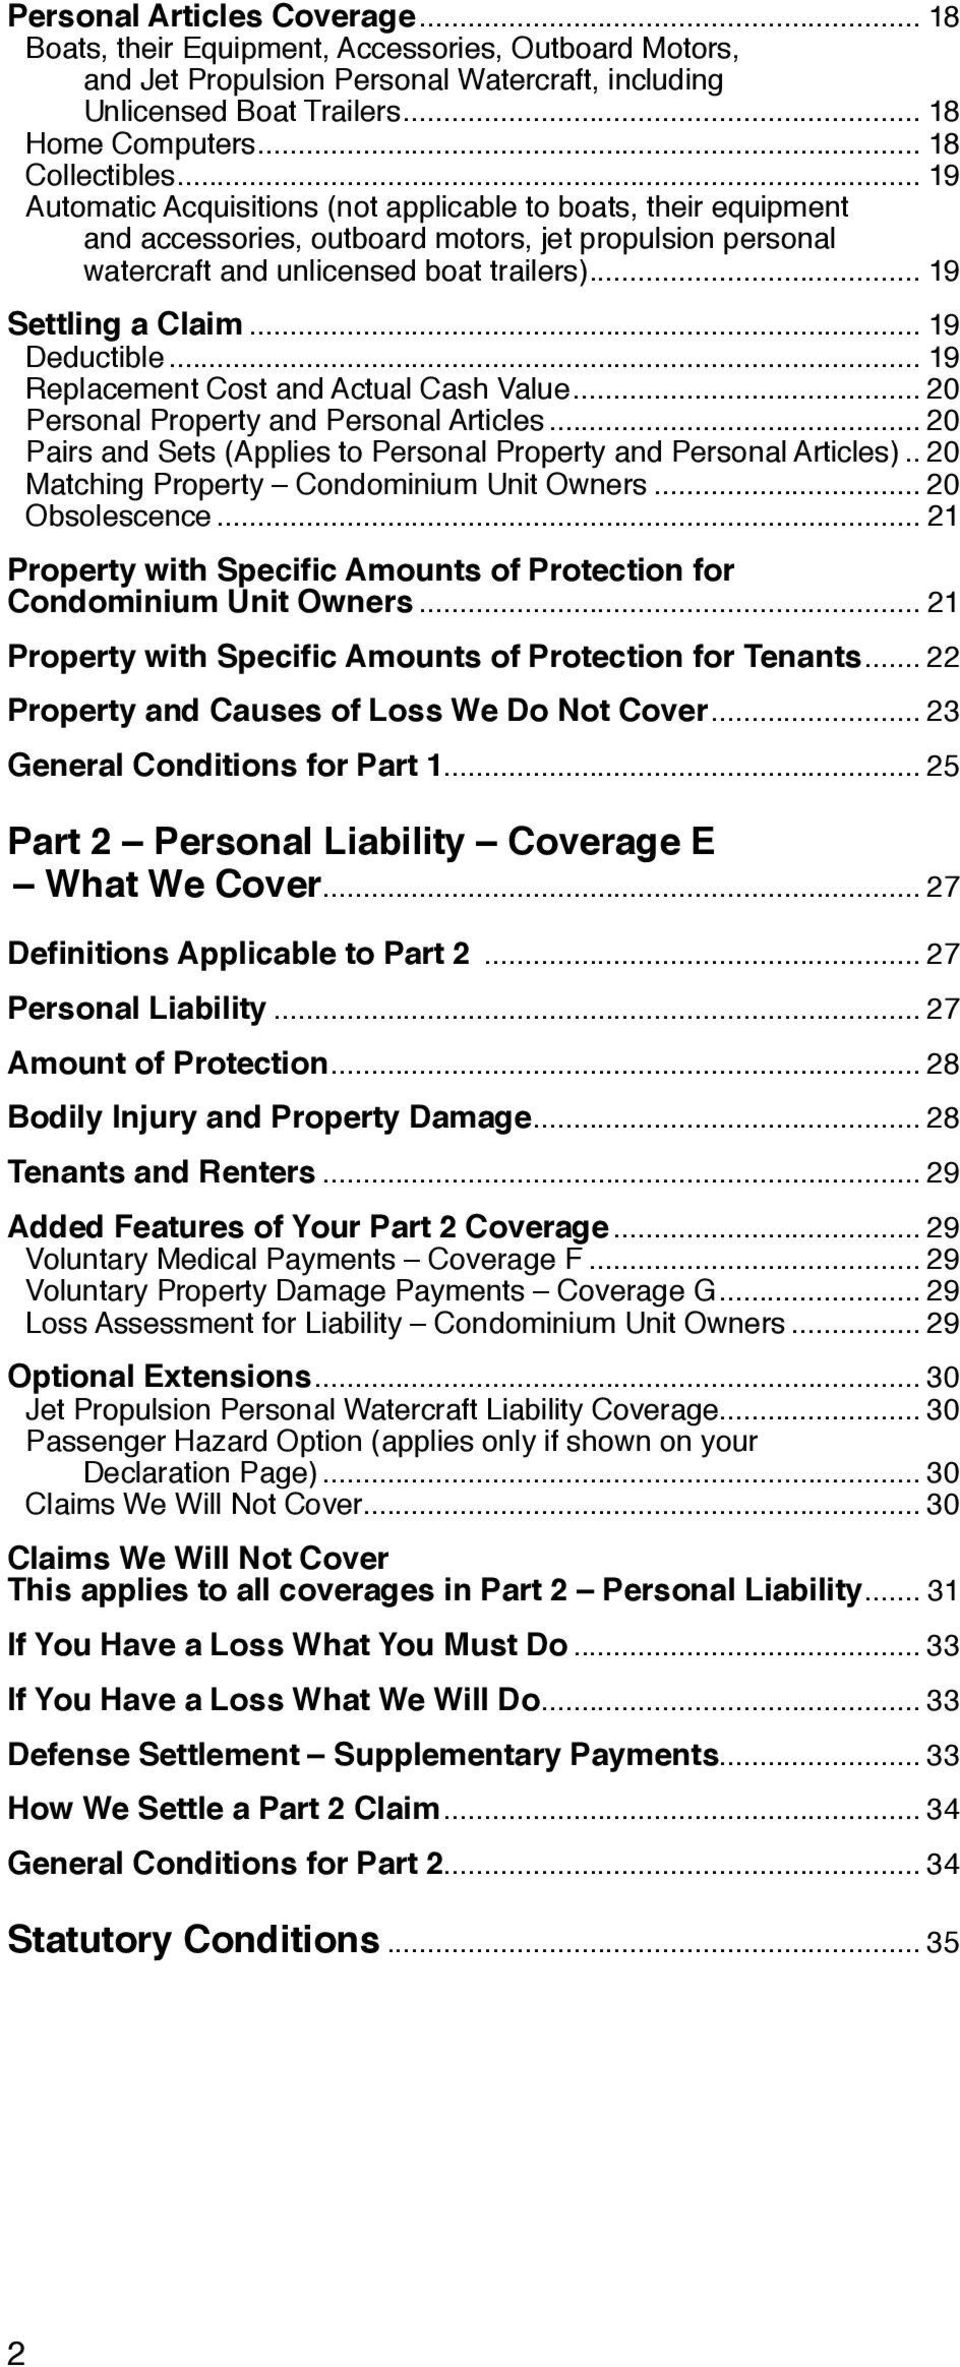 .. 19 Deductible... 19 Replacement Cost and Actual Cash Value... 20 Personal Property and Personal Articles... 20 Pairs and Sets (Applies to Personal Property and Personal Articles).